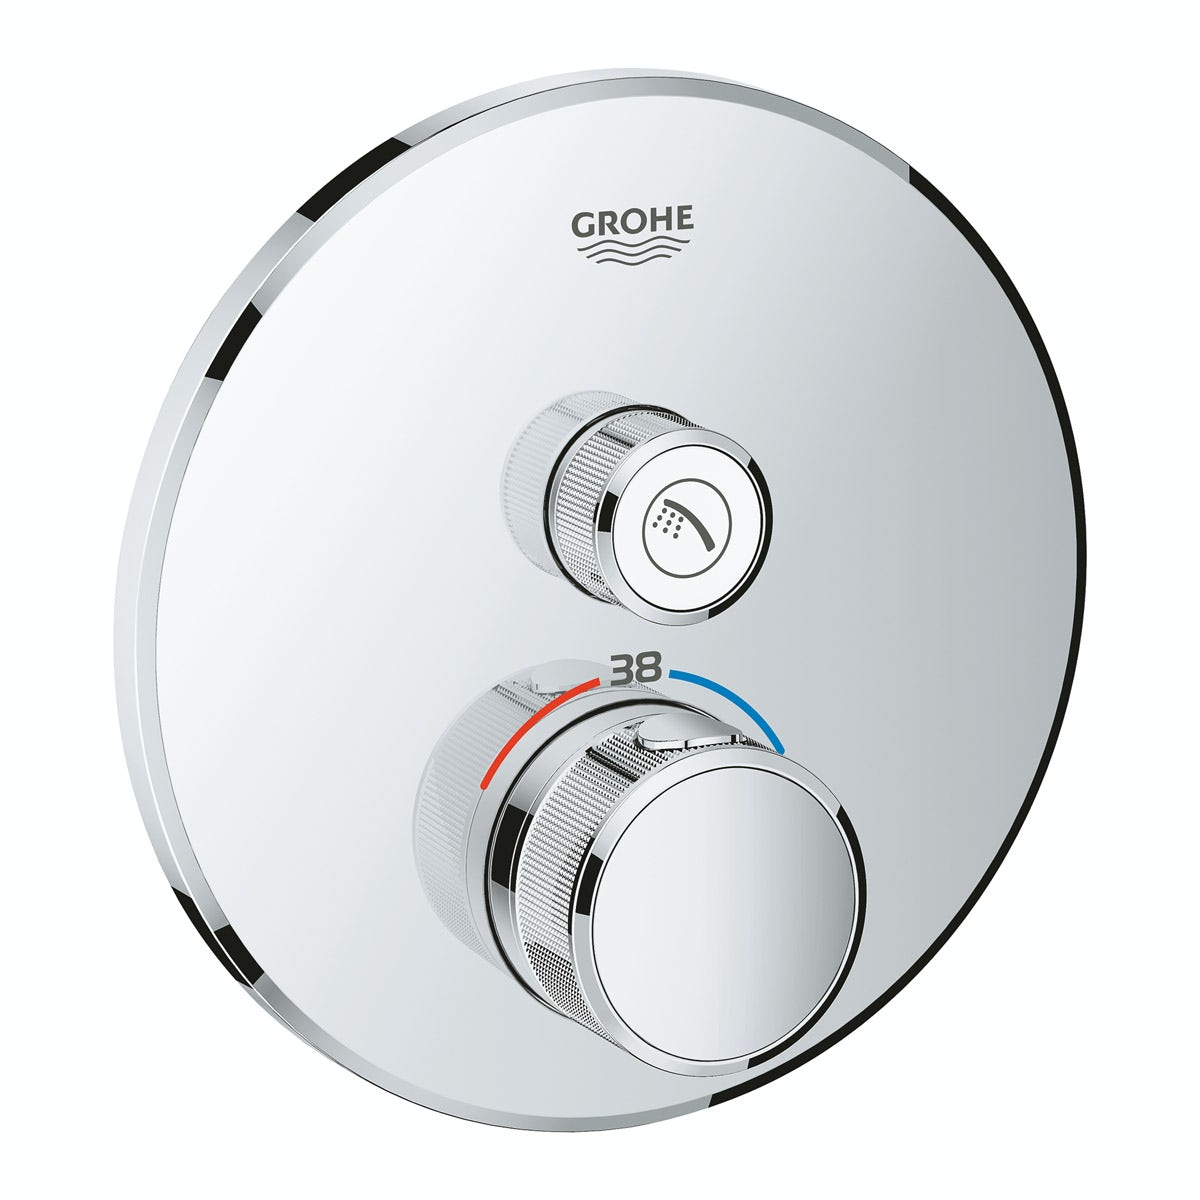 Grohe Grohtherm SmartControl round thermostatic concealed 1 way shower valve trimset